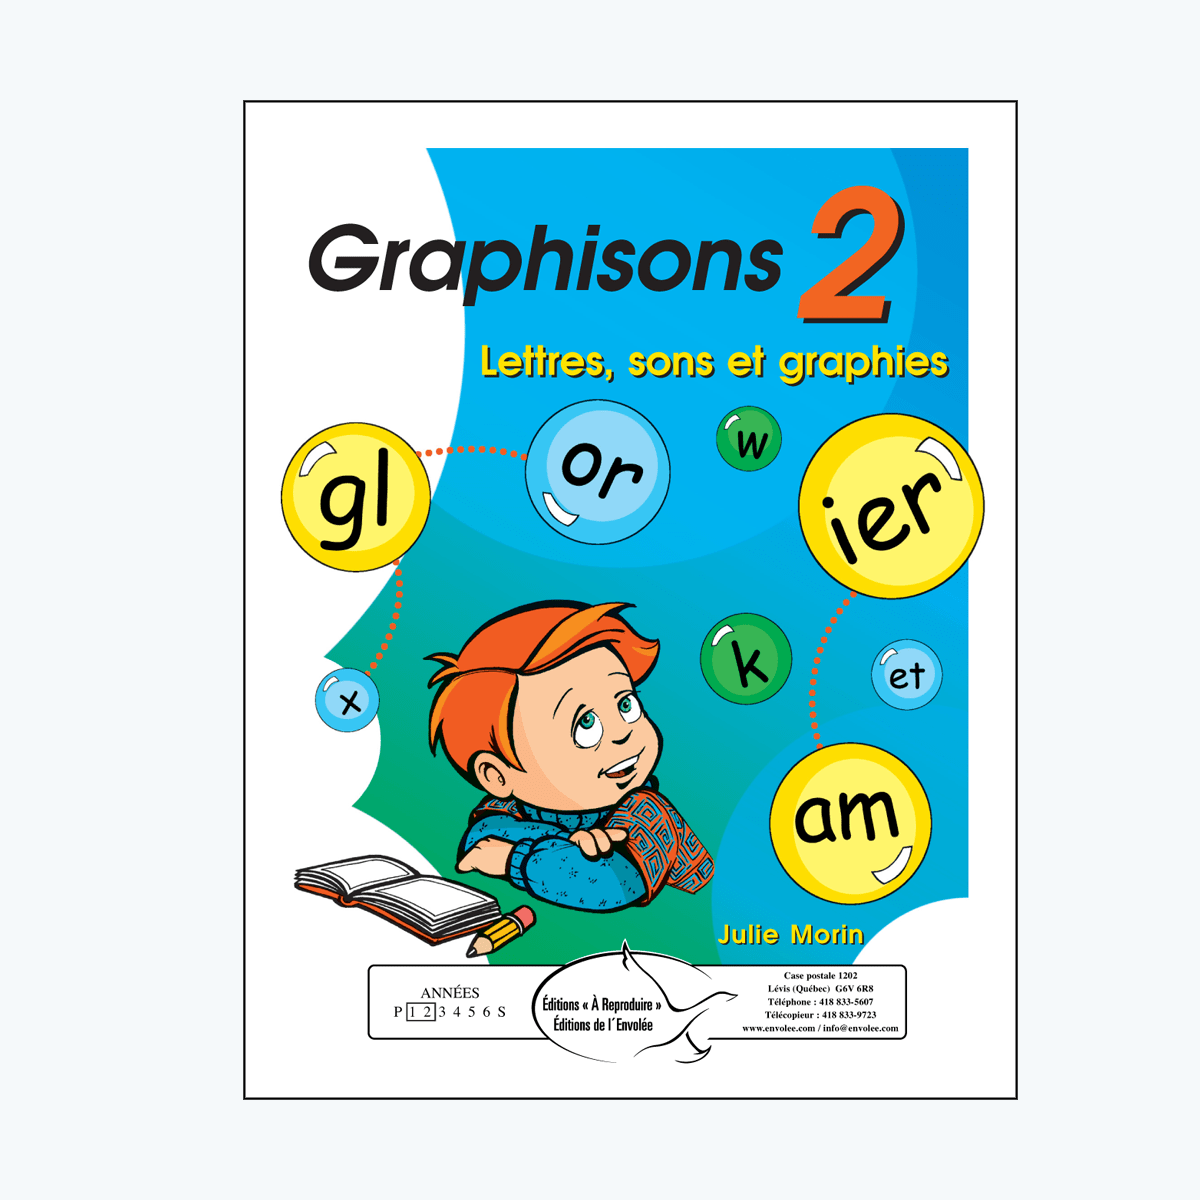 Graphisons 2